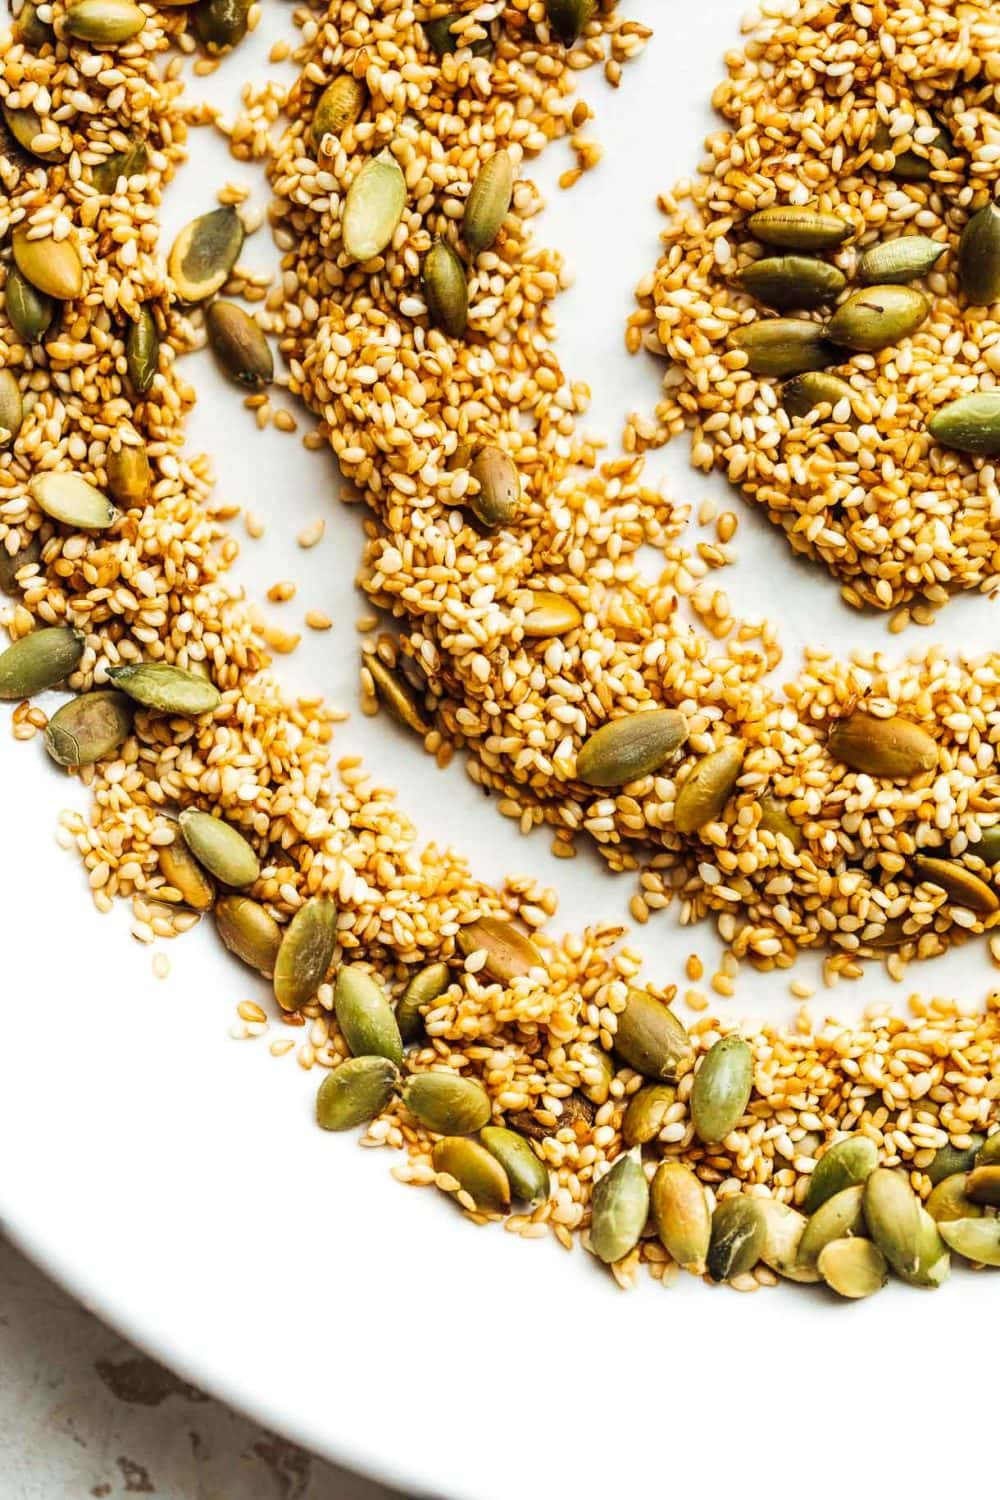 toasted sesame and pepita seeds in a swirled pattern on a white plate.